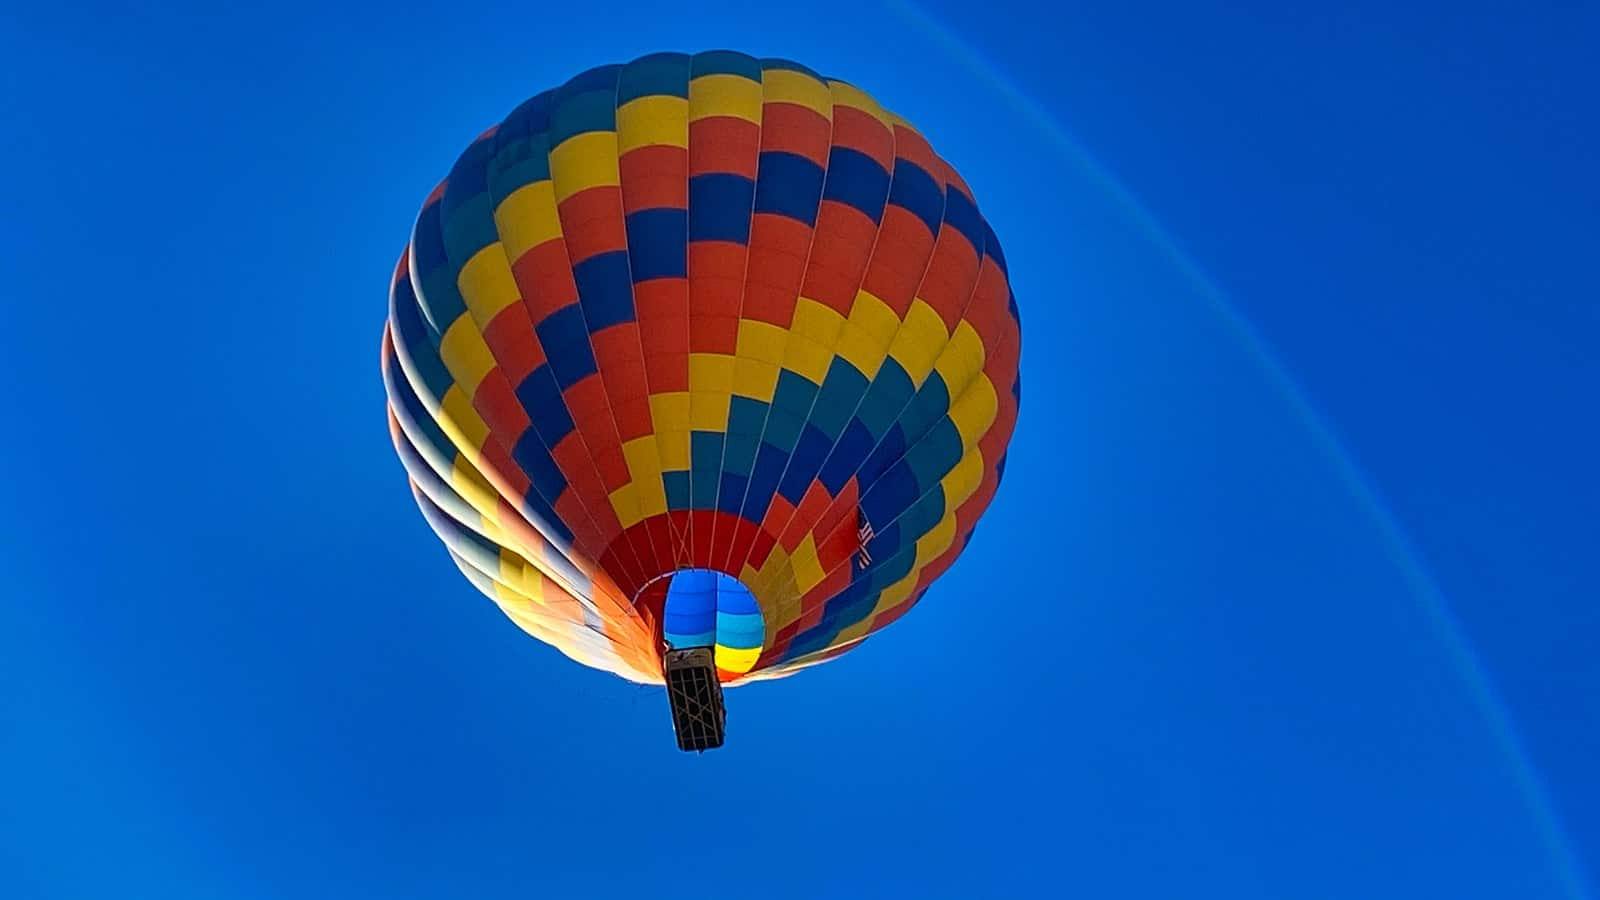 Temecula balloon